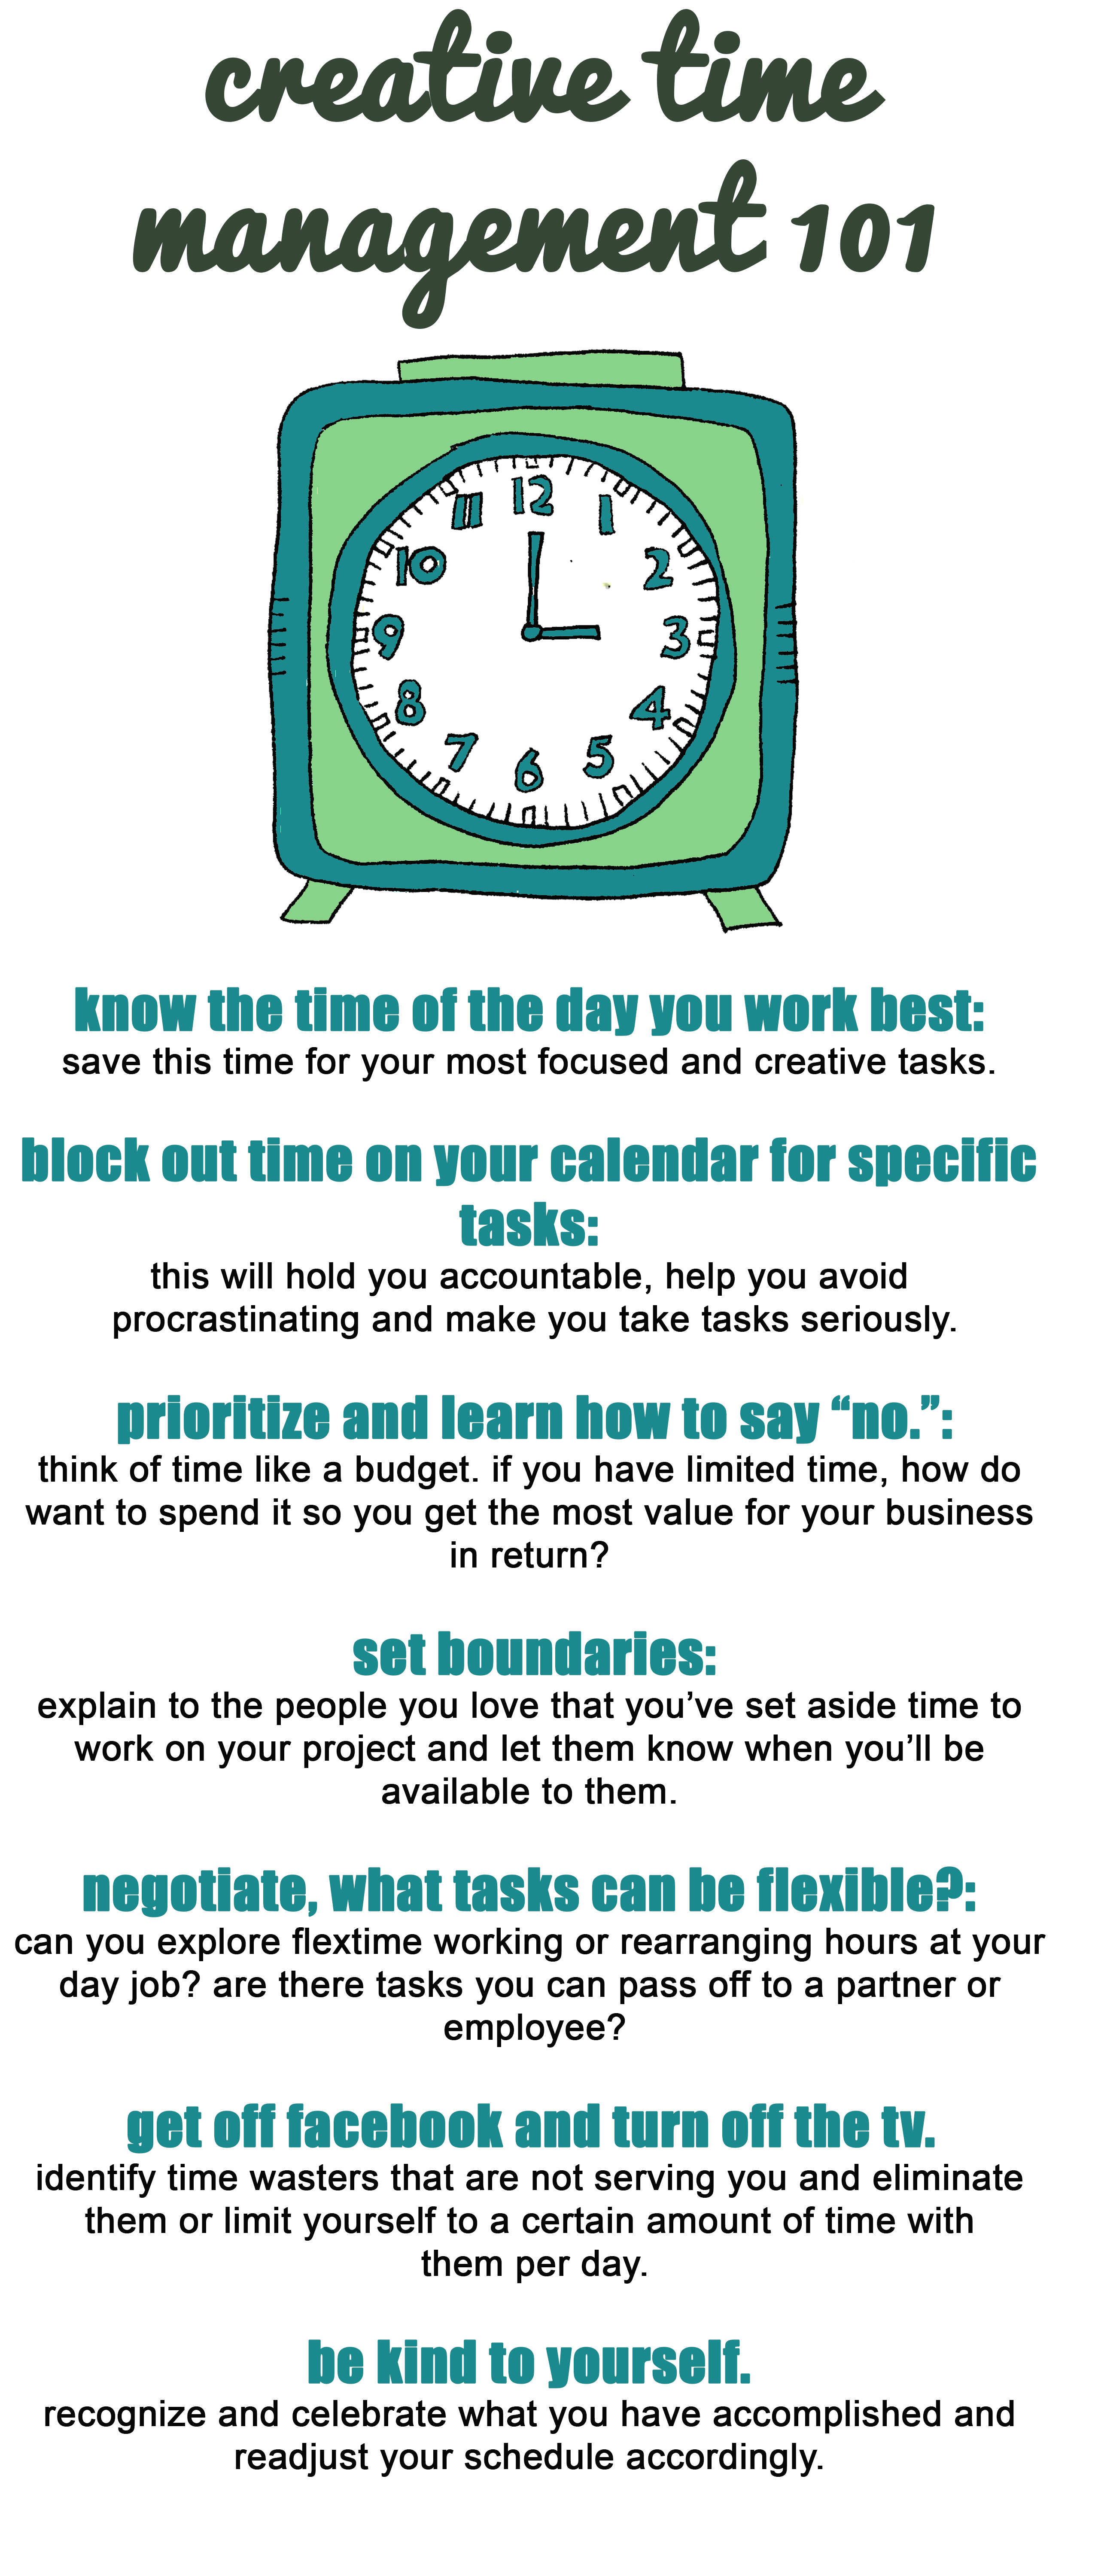 Creative Time Management